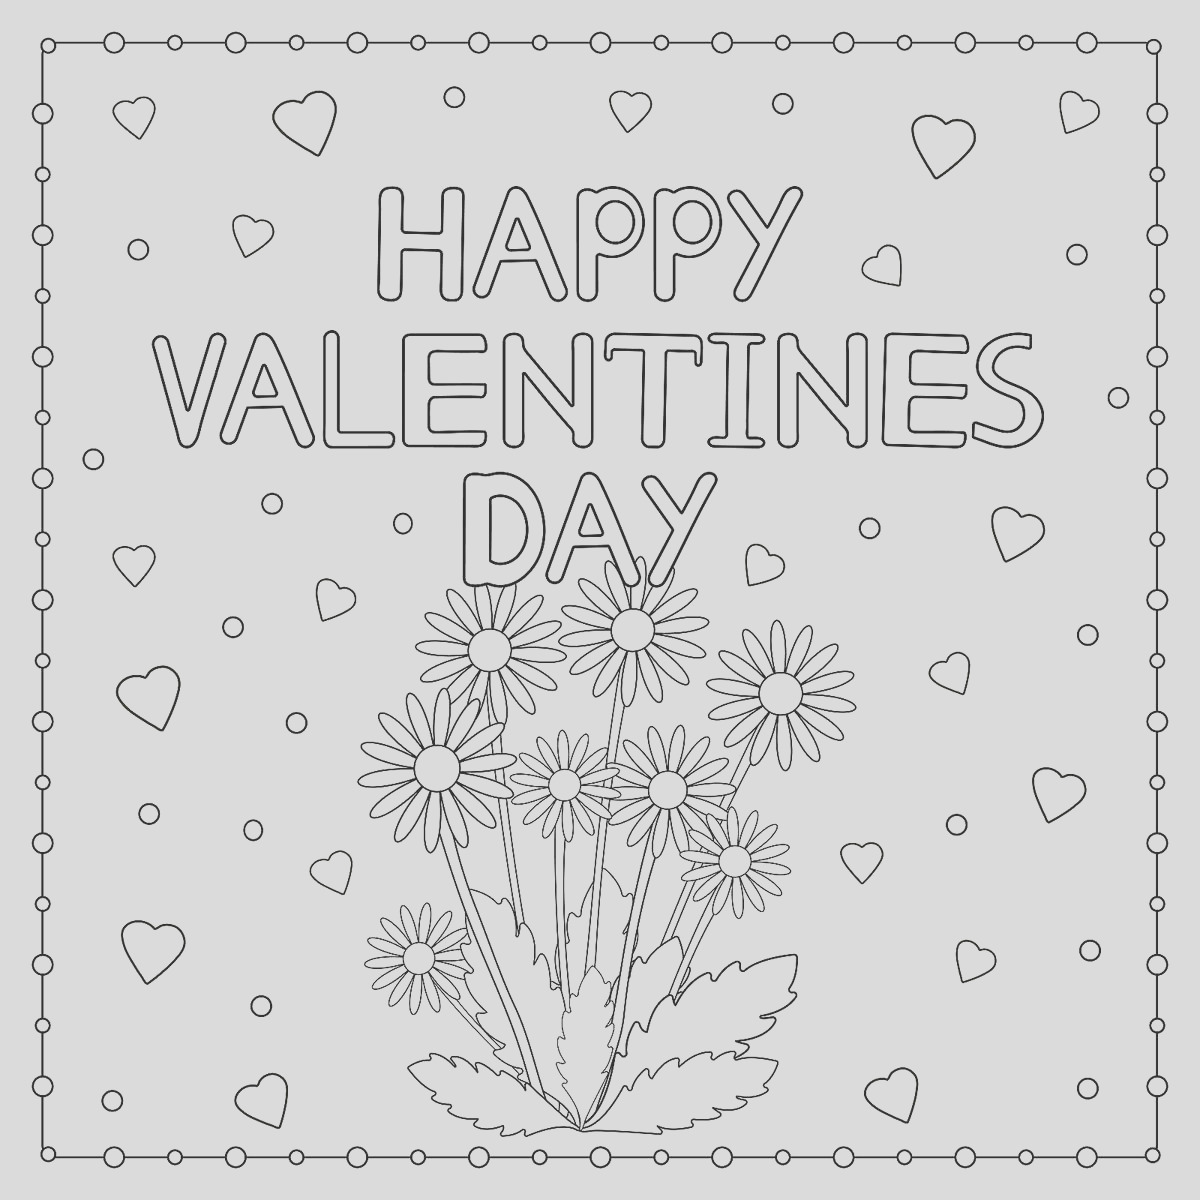 Valentines Day Coloring Pages Heart Love Themed Coloring Pages for Kids Adults